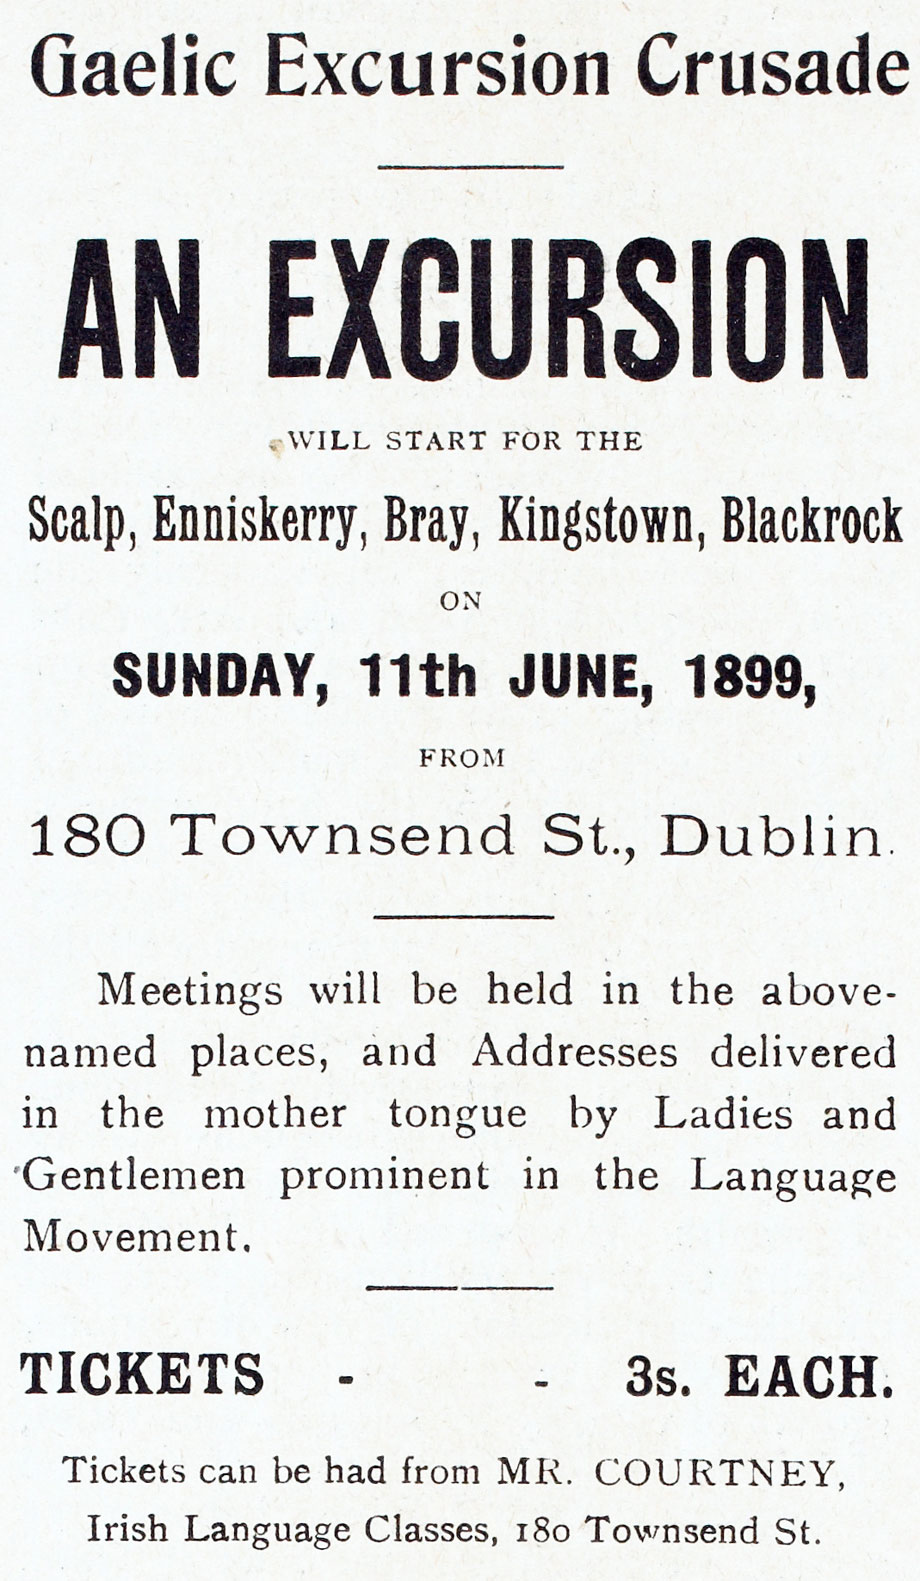 Advertisement for a Gaelic Excursion Crusade from The United Irishman, 1899